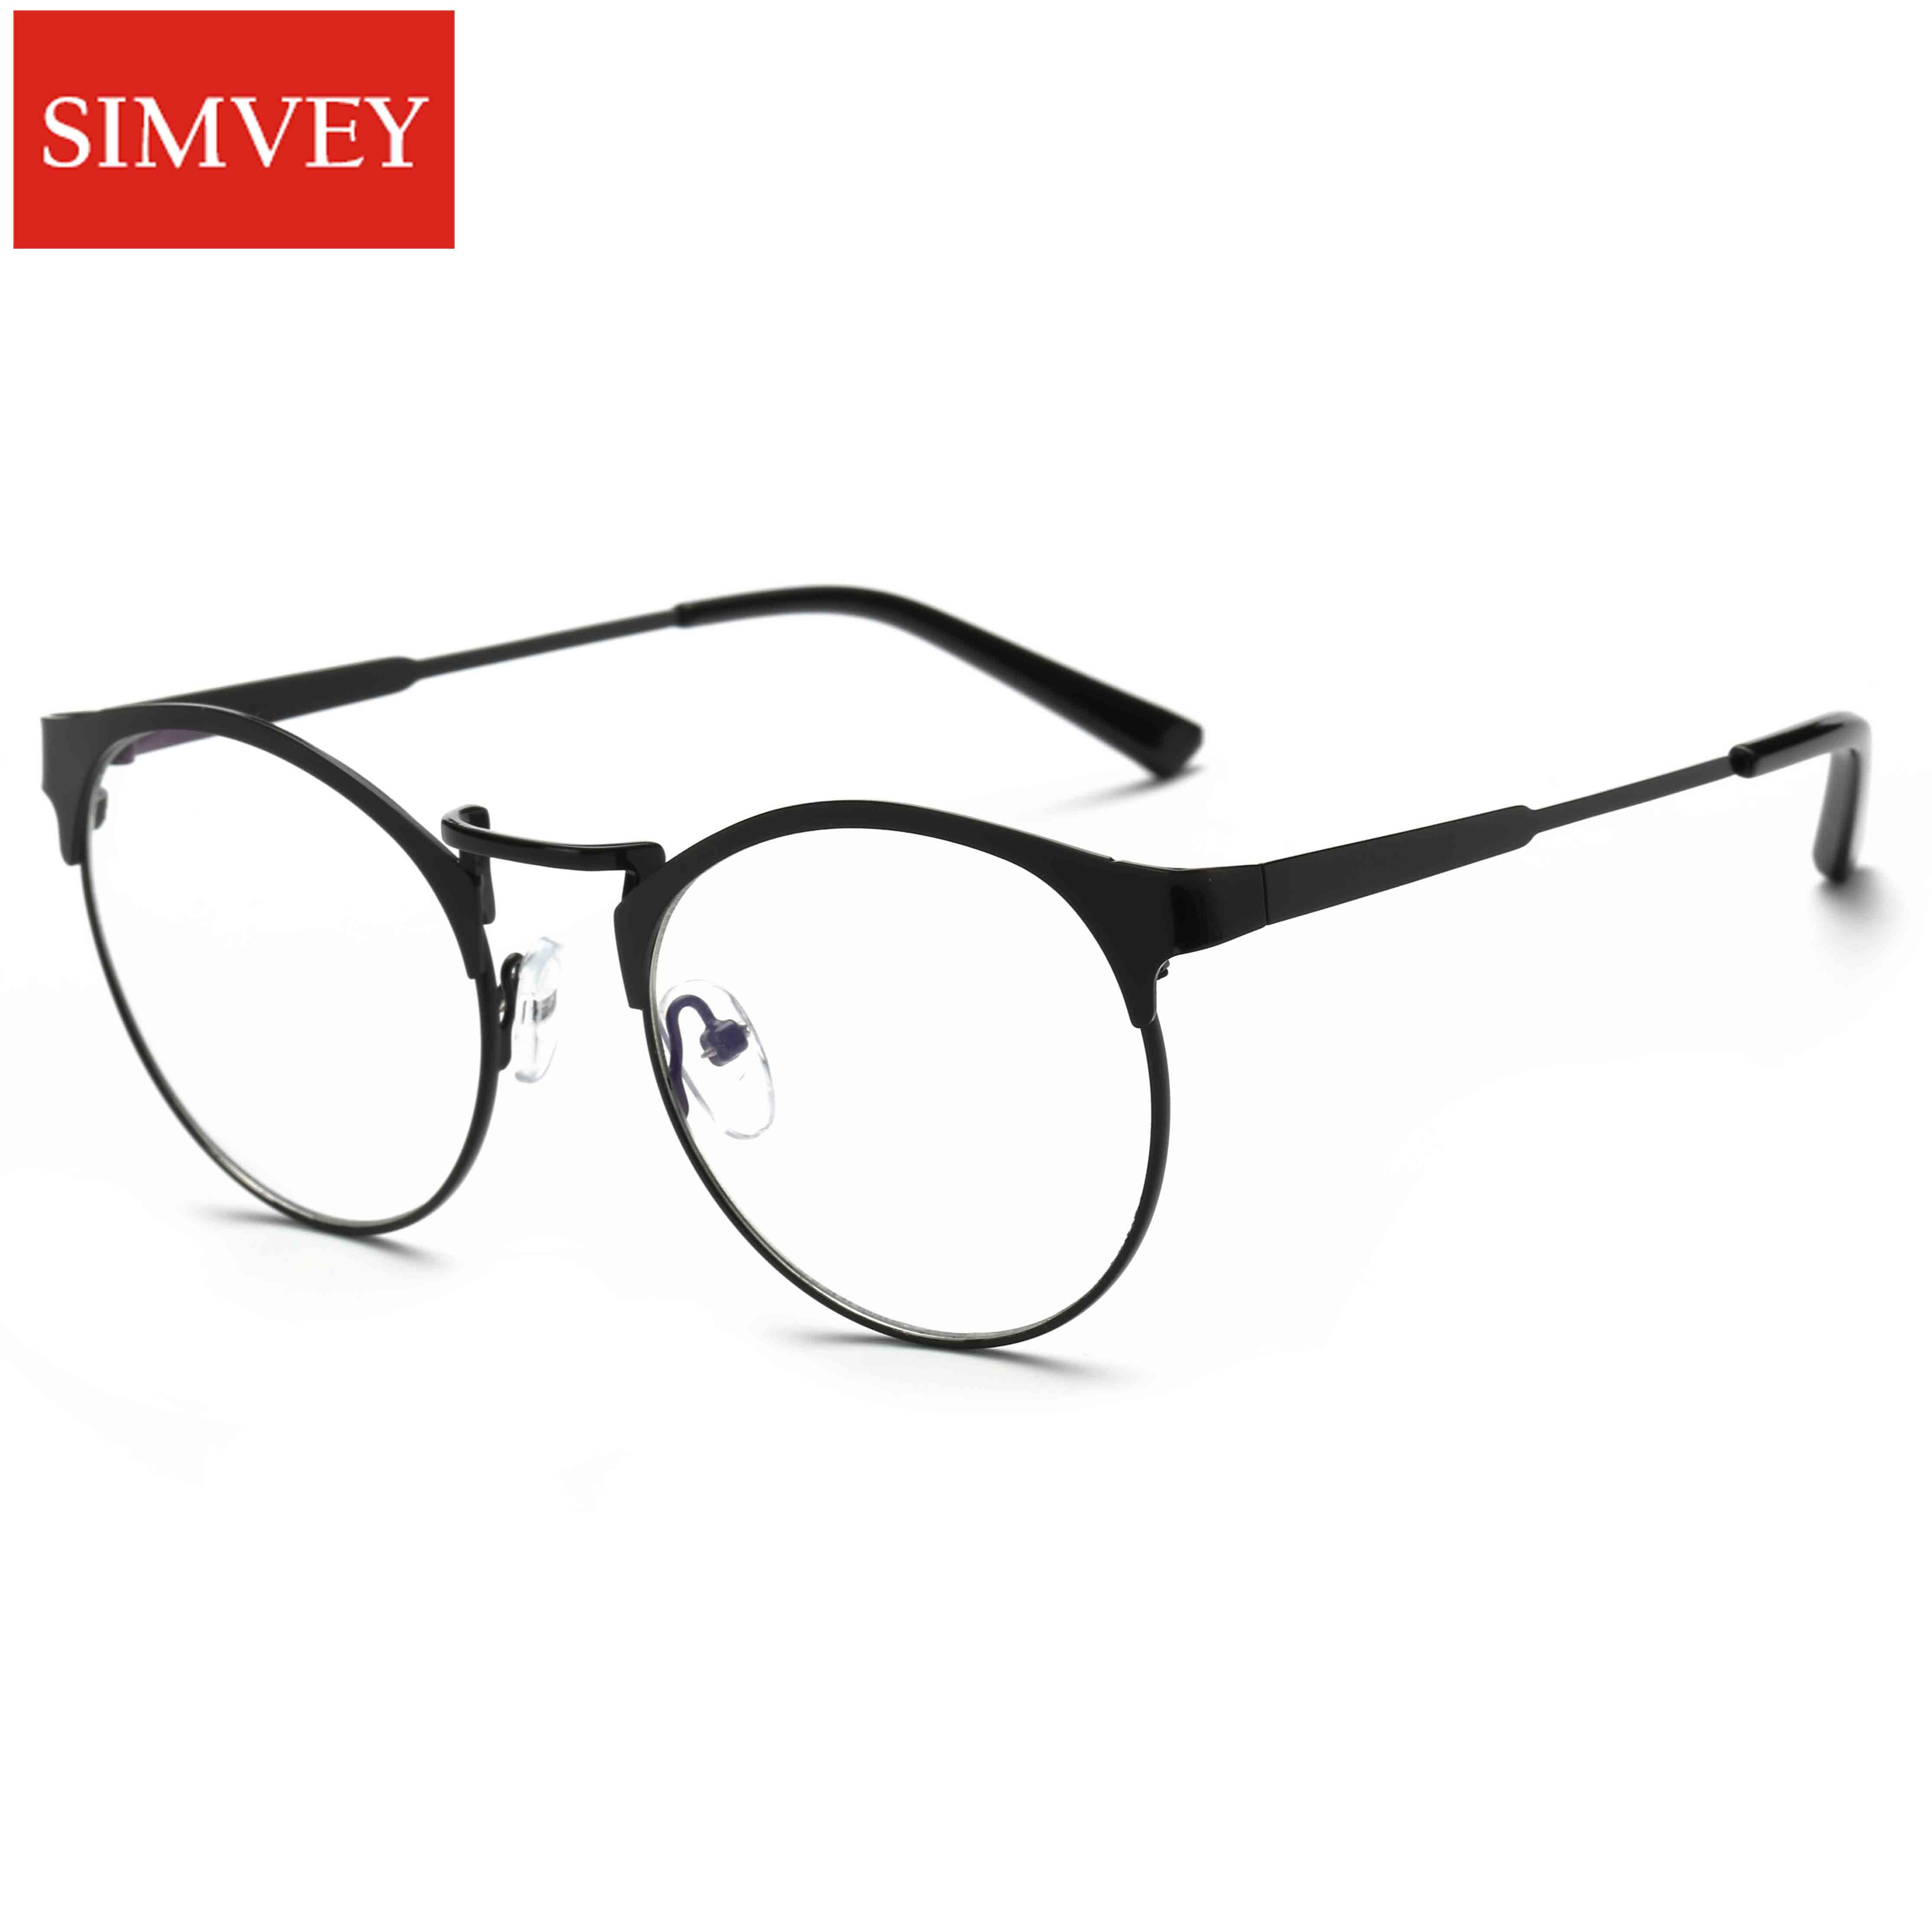 Simvey 2017 New Fashion Women Mens Computer Goggles Retro Metal Blue Light Blocking Glasses Round Gaming Glasses UV400